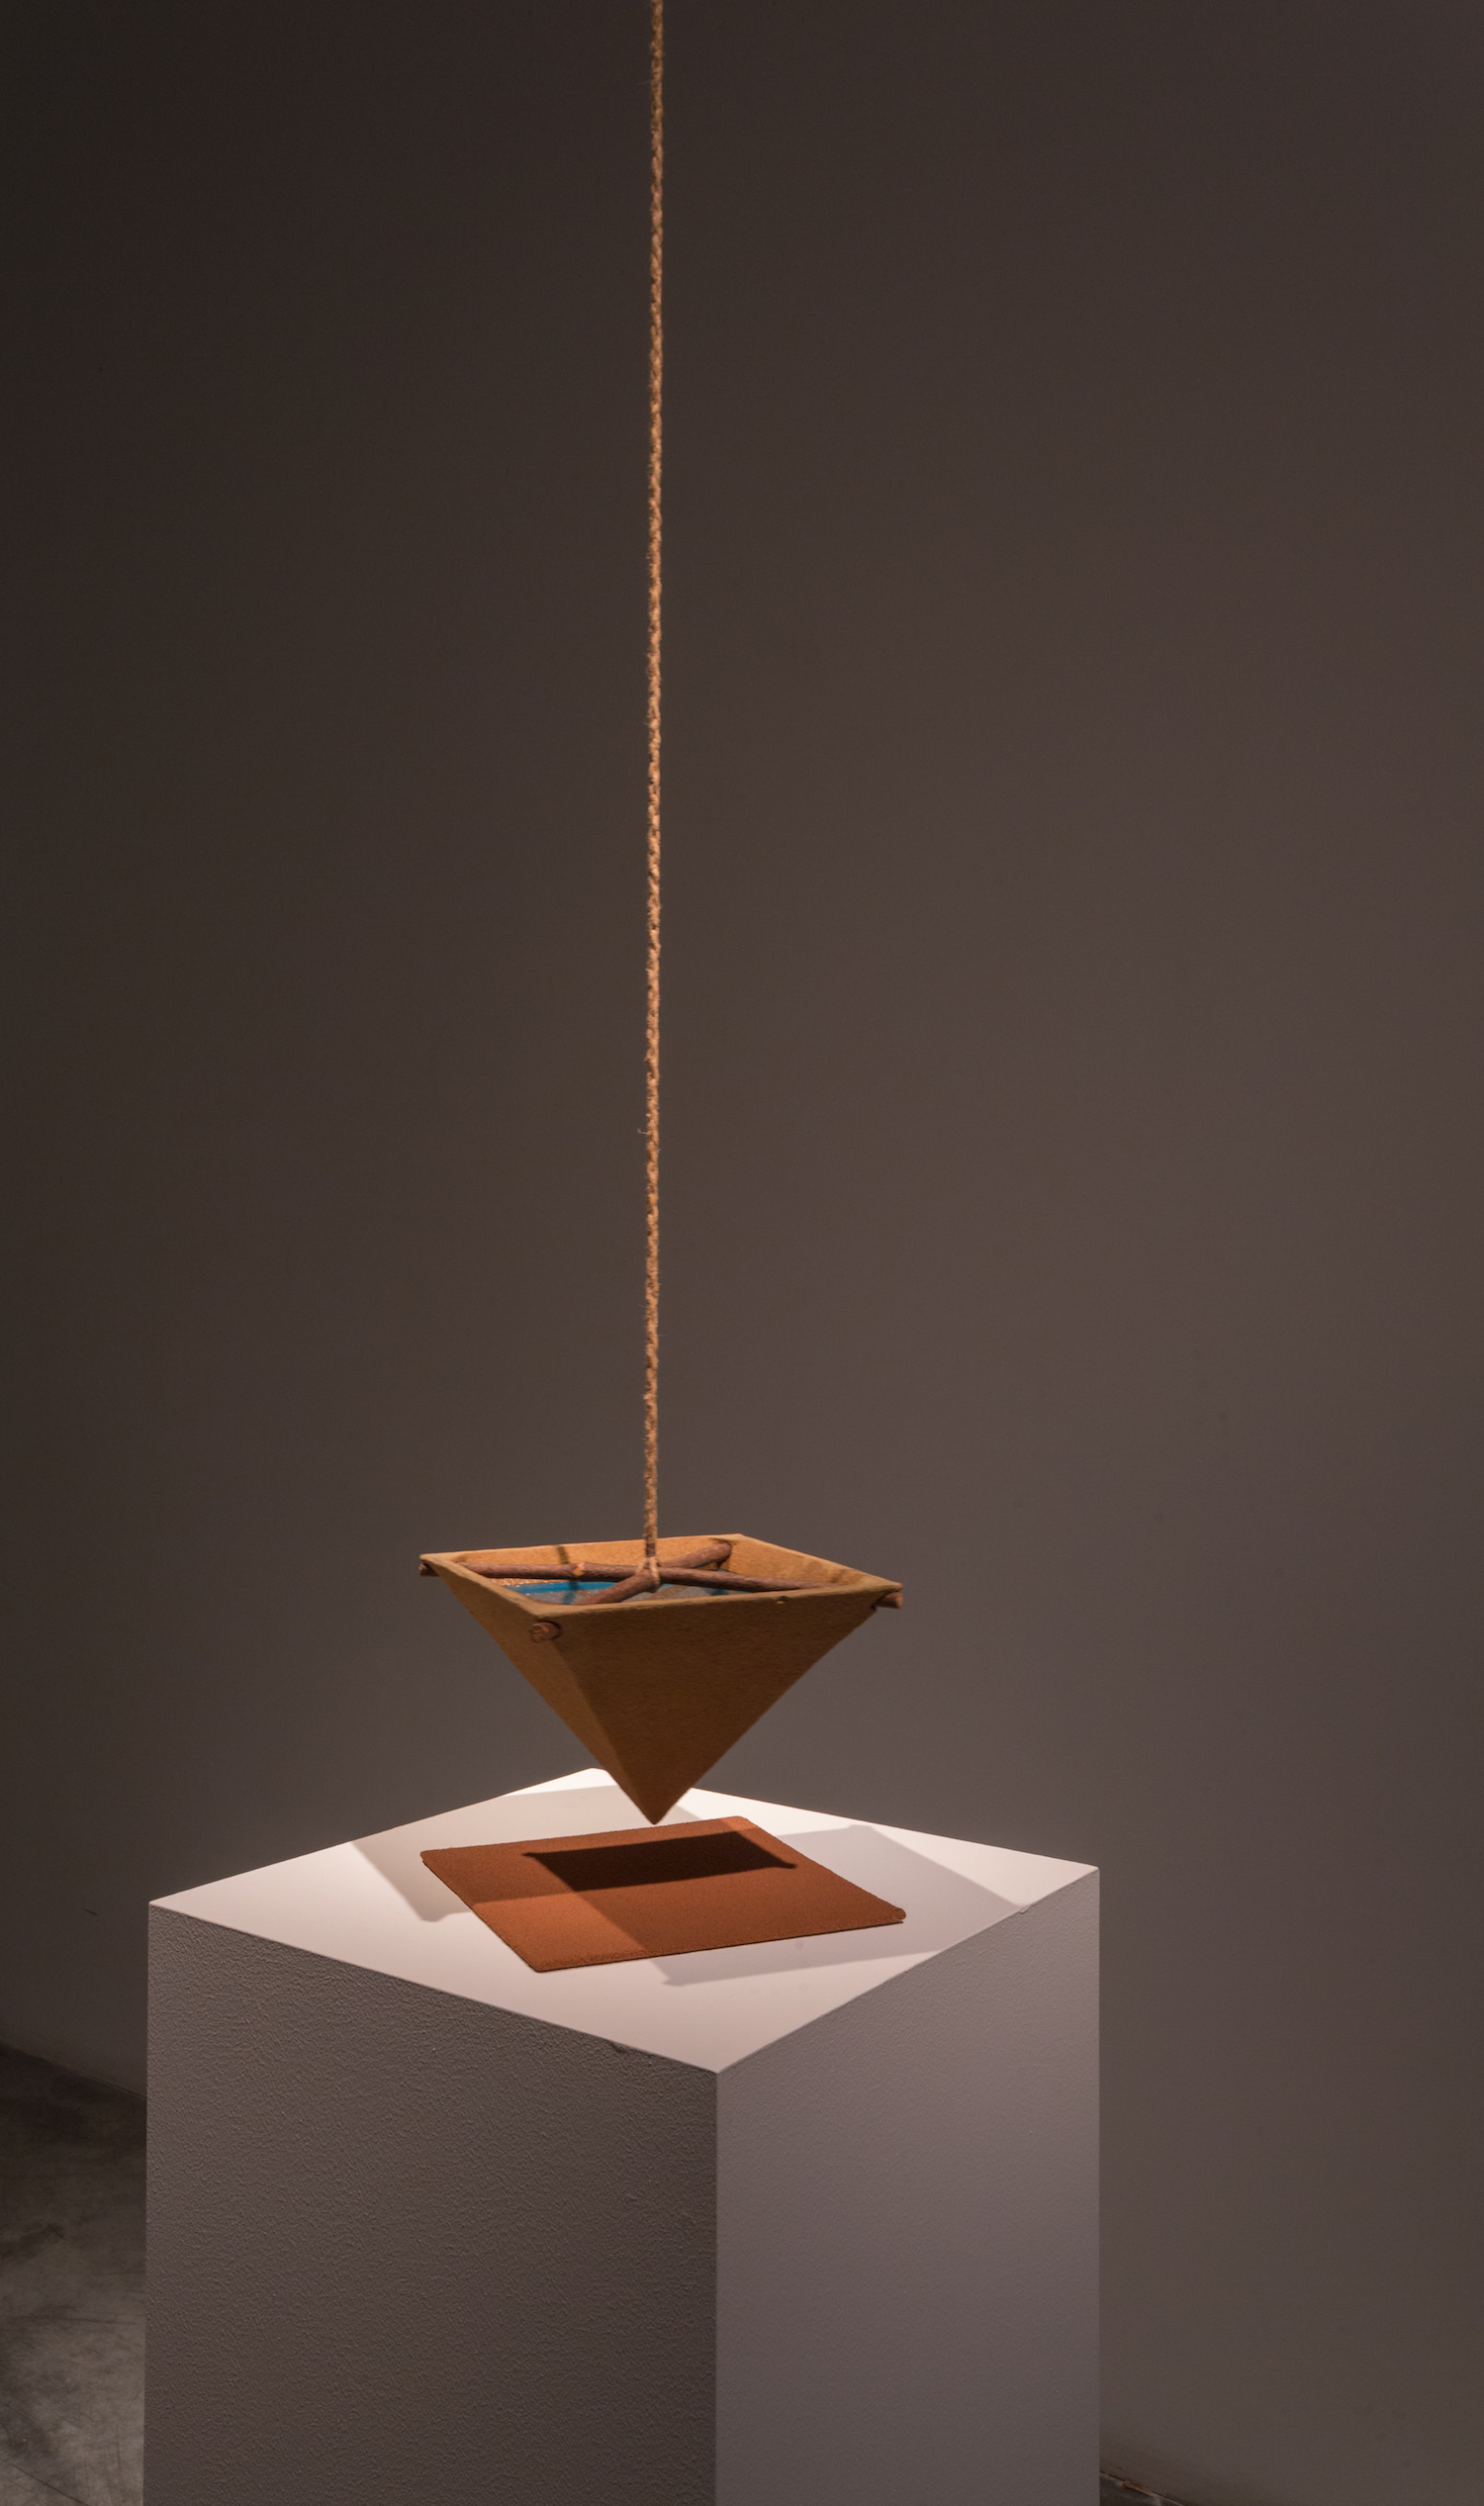 Suspended Water Level 1982 Ceramic, wood, rope, water, wood and red sand 21.5 x 21.5 x 34 cm